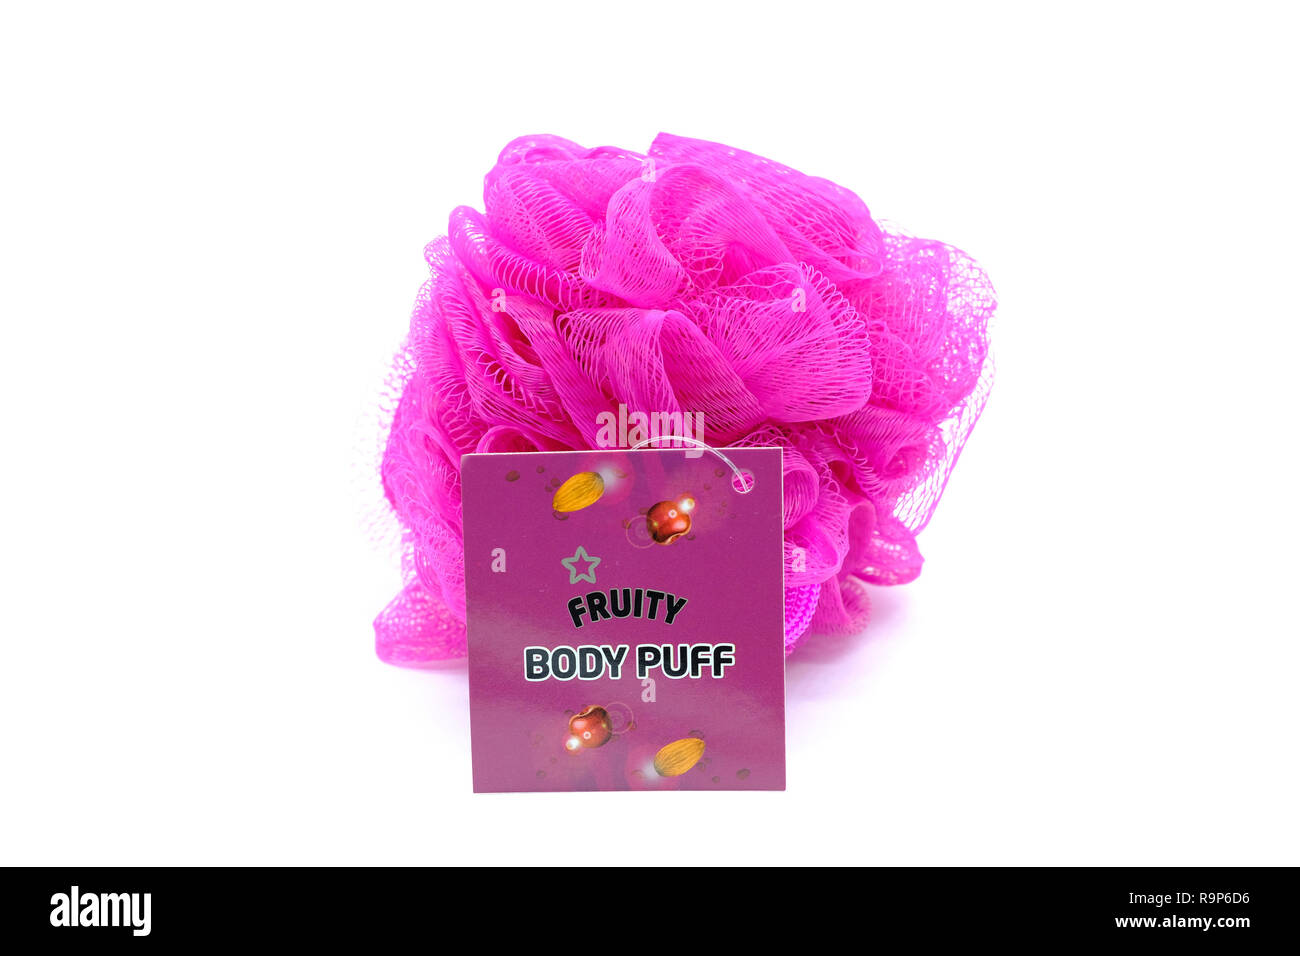 Largs, Scotland, UK - December 21, 2018: Superdrug Branded Body Puff Shower sponge and the product card only is recyclable as displayed on the rear of - Stock Image